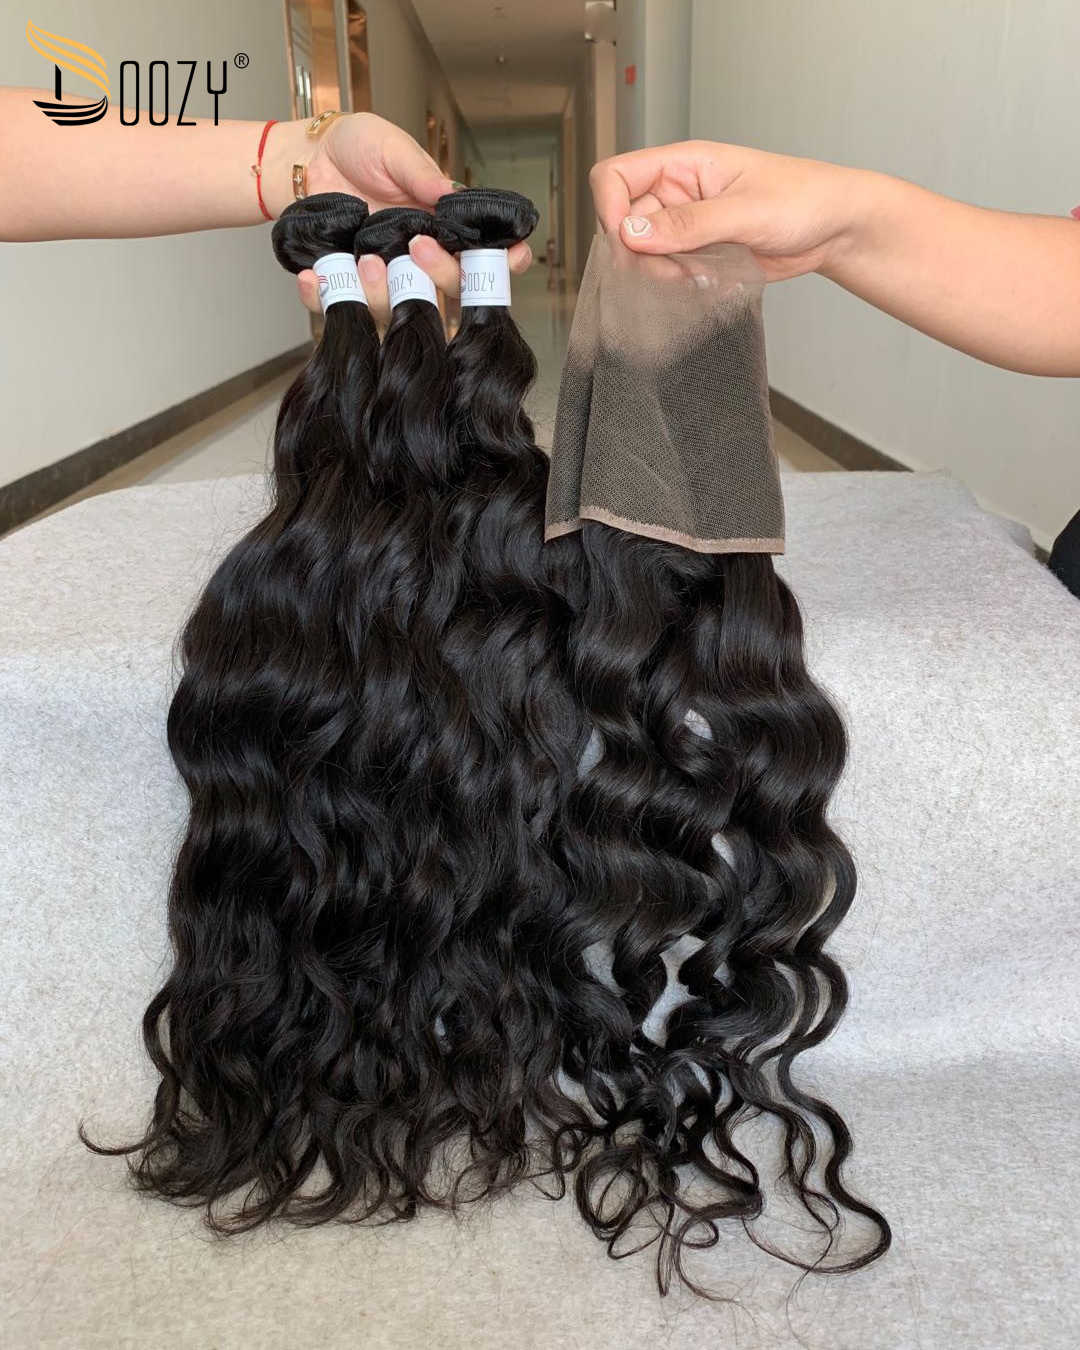 Doozy Hair 10A Natural Wave Peruvian Virgin Human Hair 3 Bundles With 13x4 Ear To Ear Lace Frontal Closure